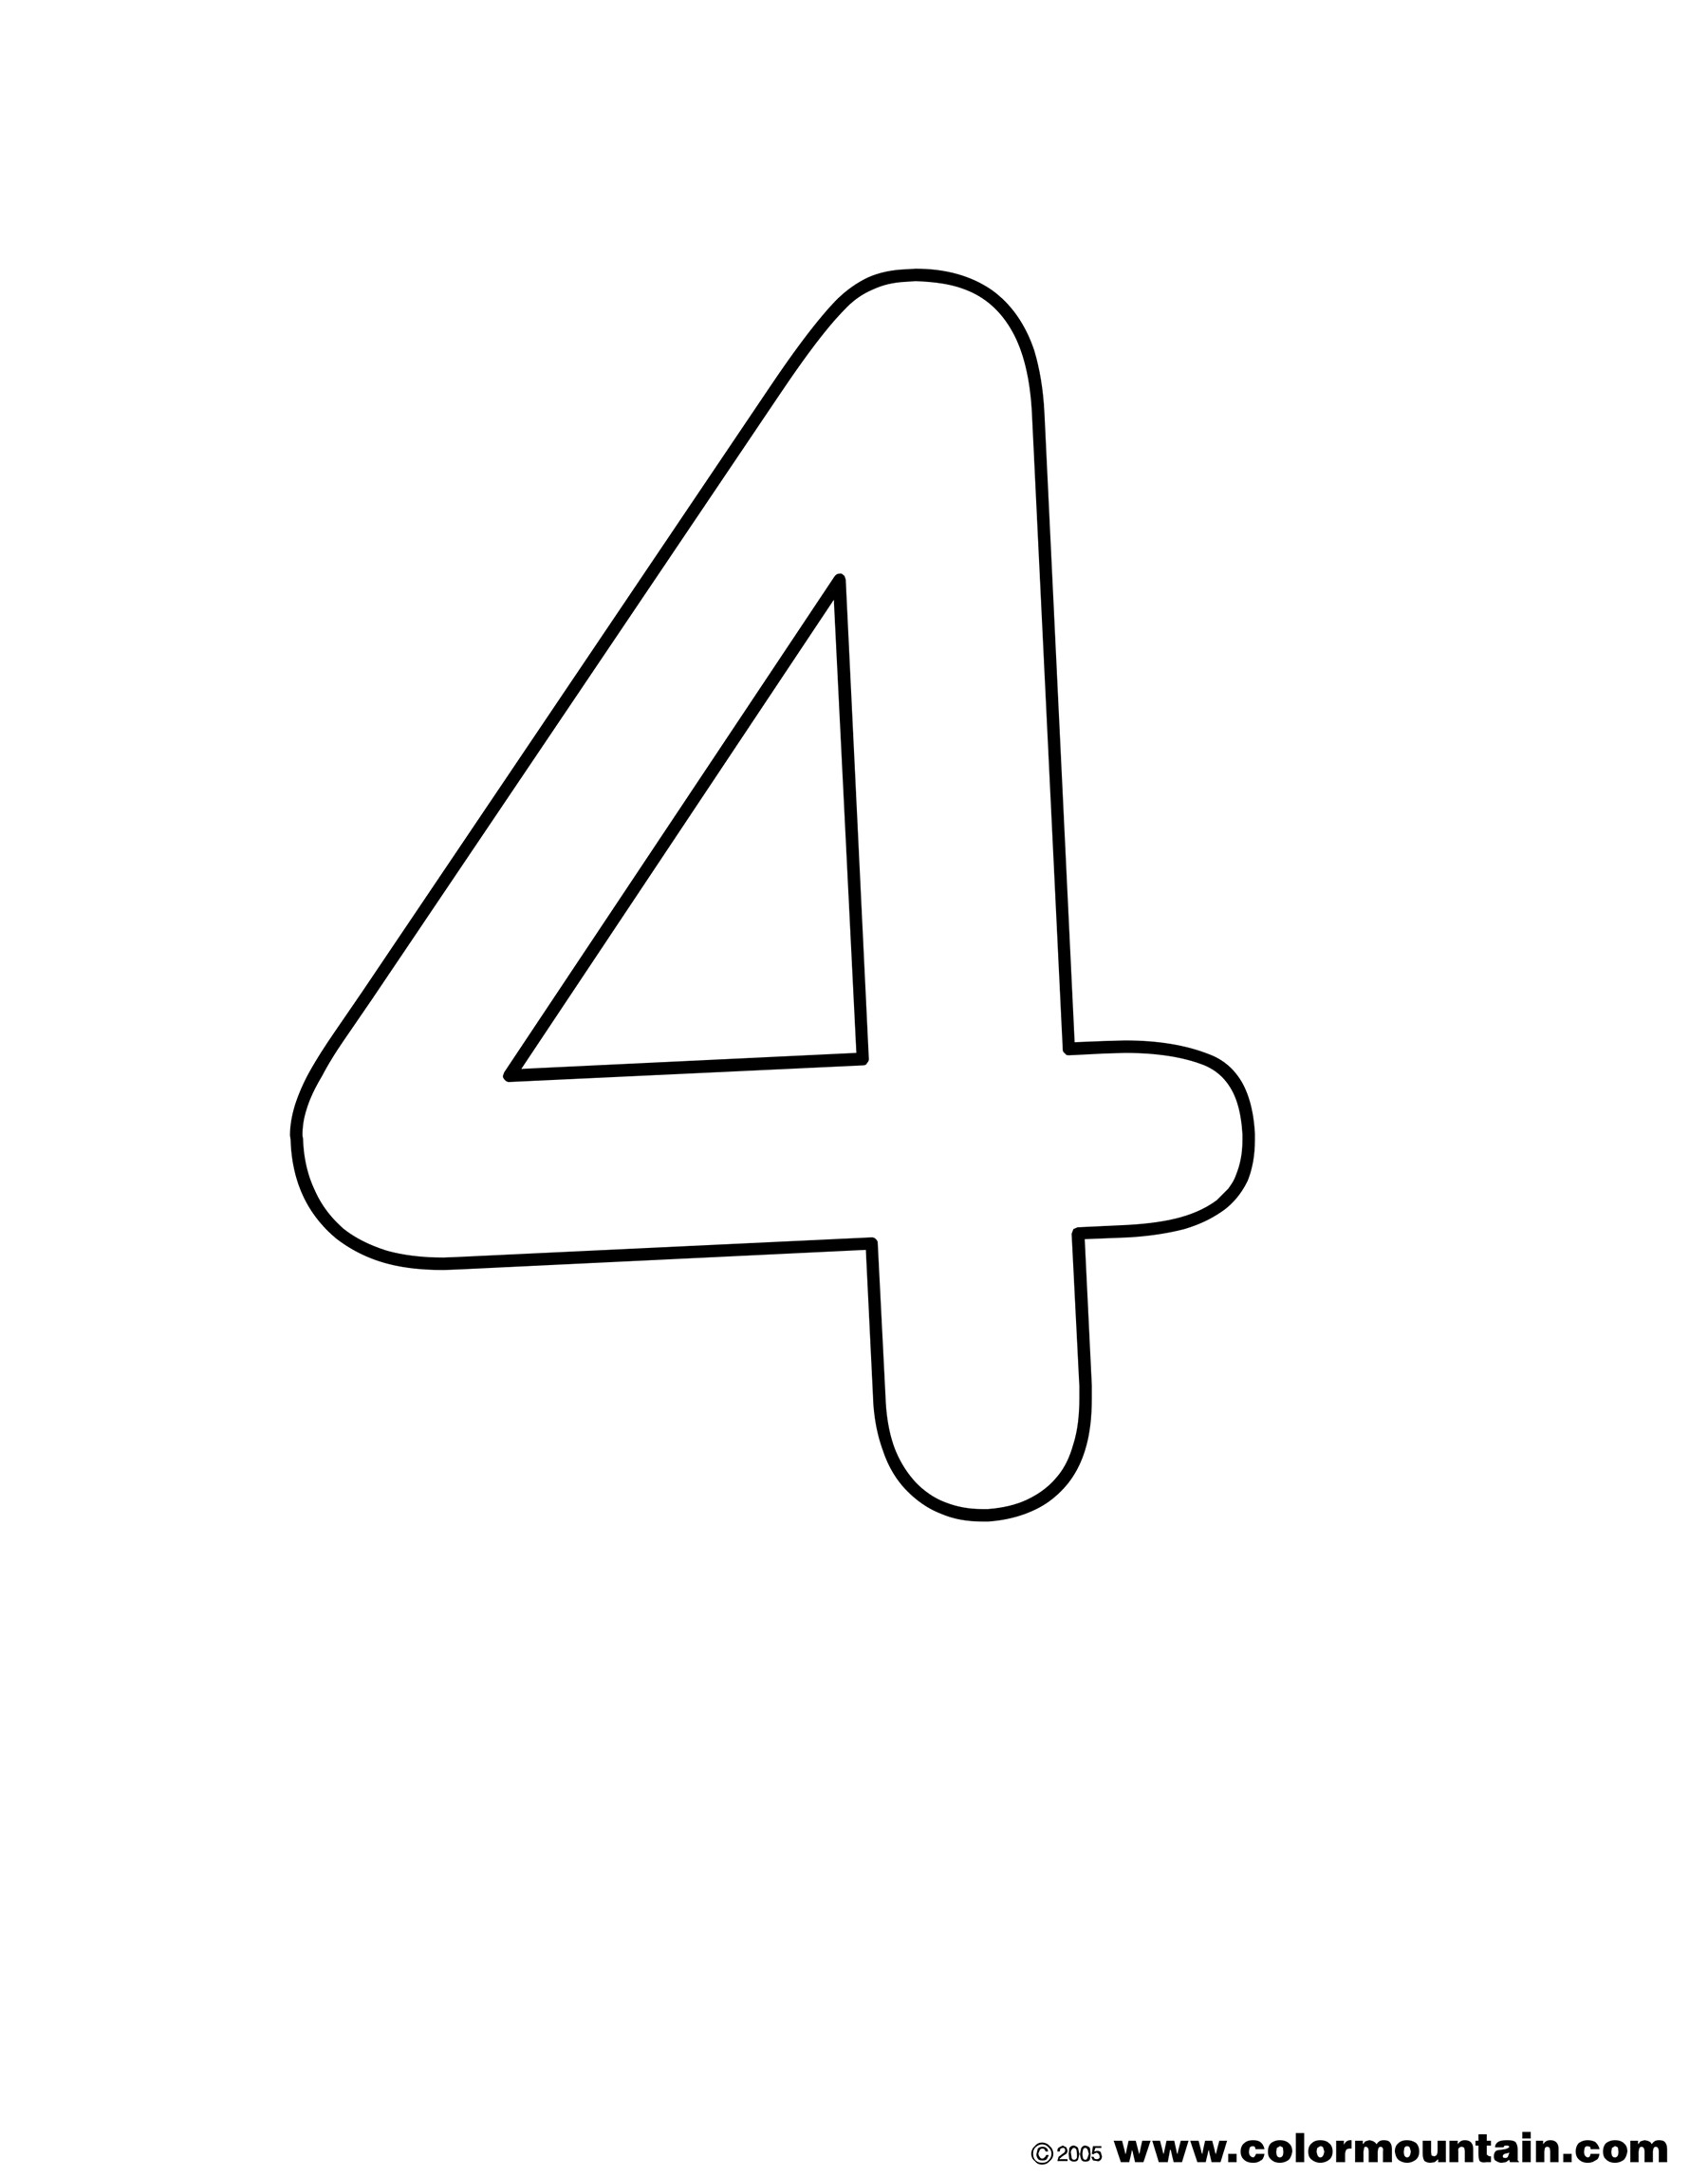 number 4 coloring get this number 4 coloring page 4514a coloring 4 number